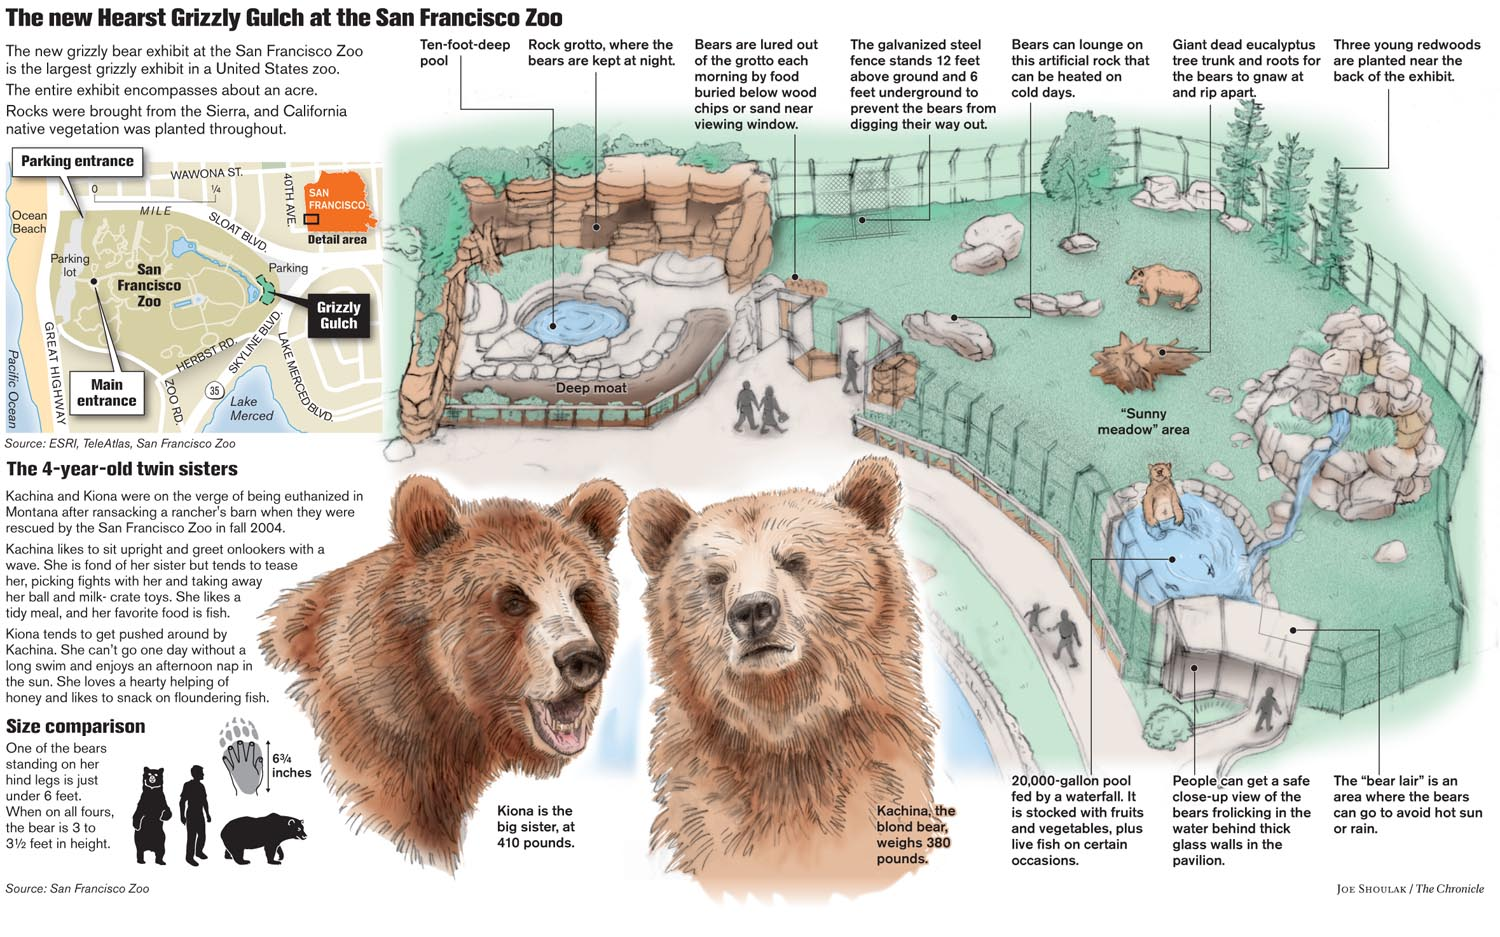 Grizzly bears at the San Francisco Zoo